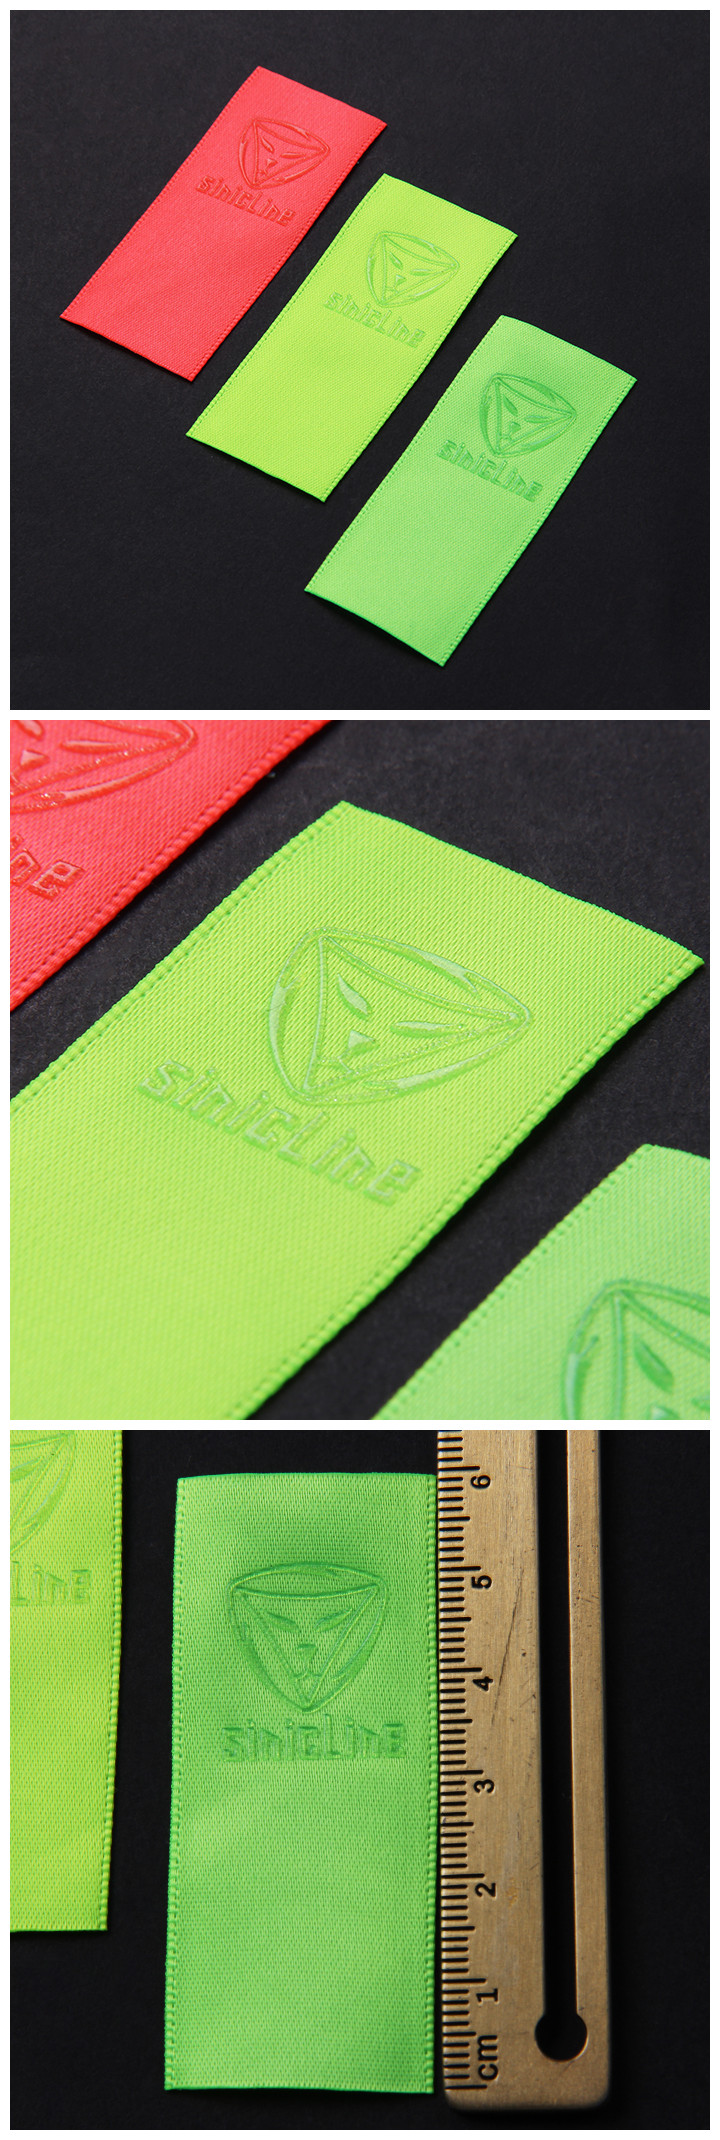 New launch: Fluorescent printed clothing labels for sportswear.   Browse more printed labels at http://www.sinicline.net/printed_labels/.   #labeling #fabriclabel #clothinglabel #fashion #sportswear #sinicline